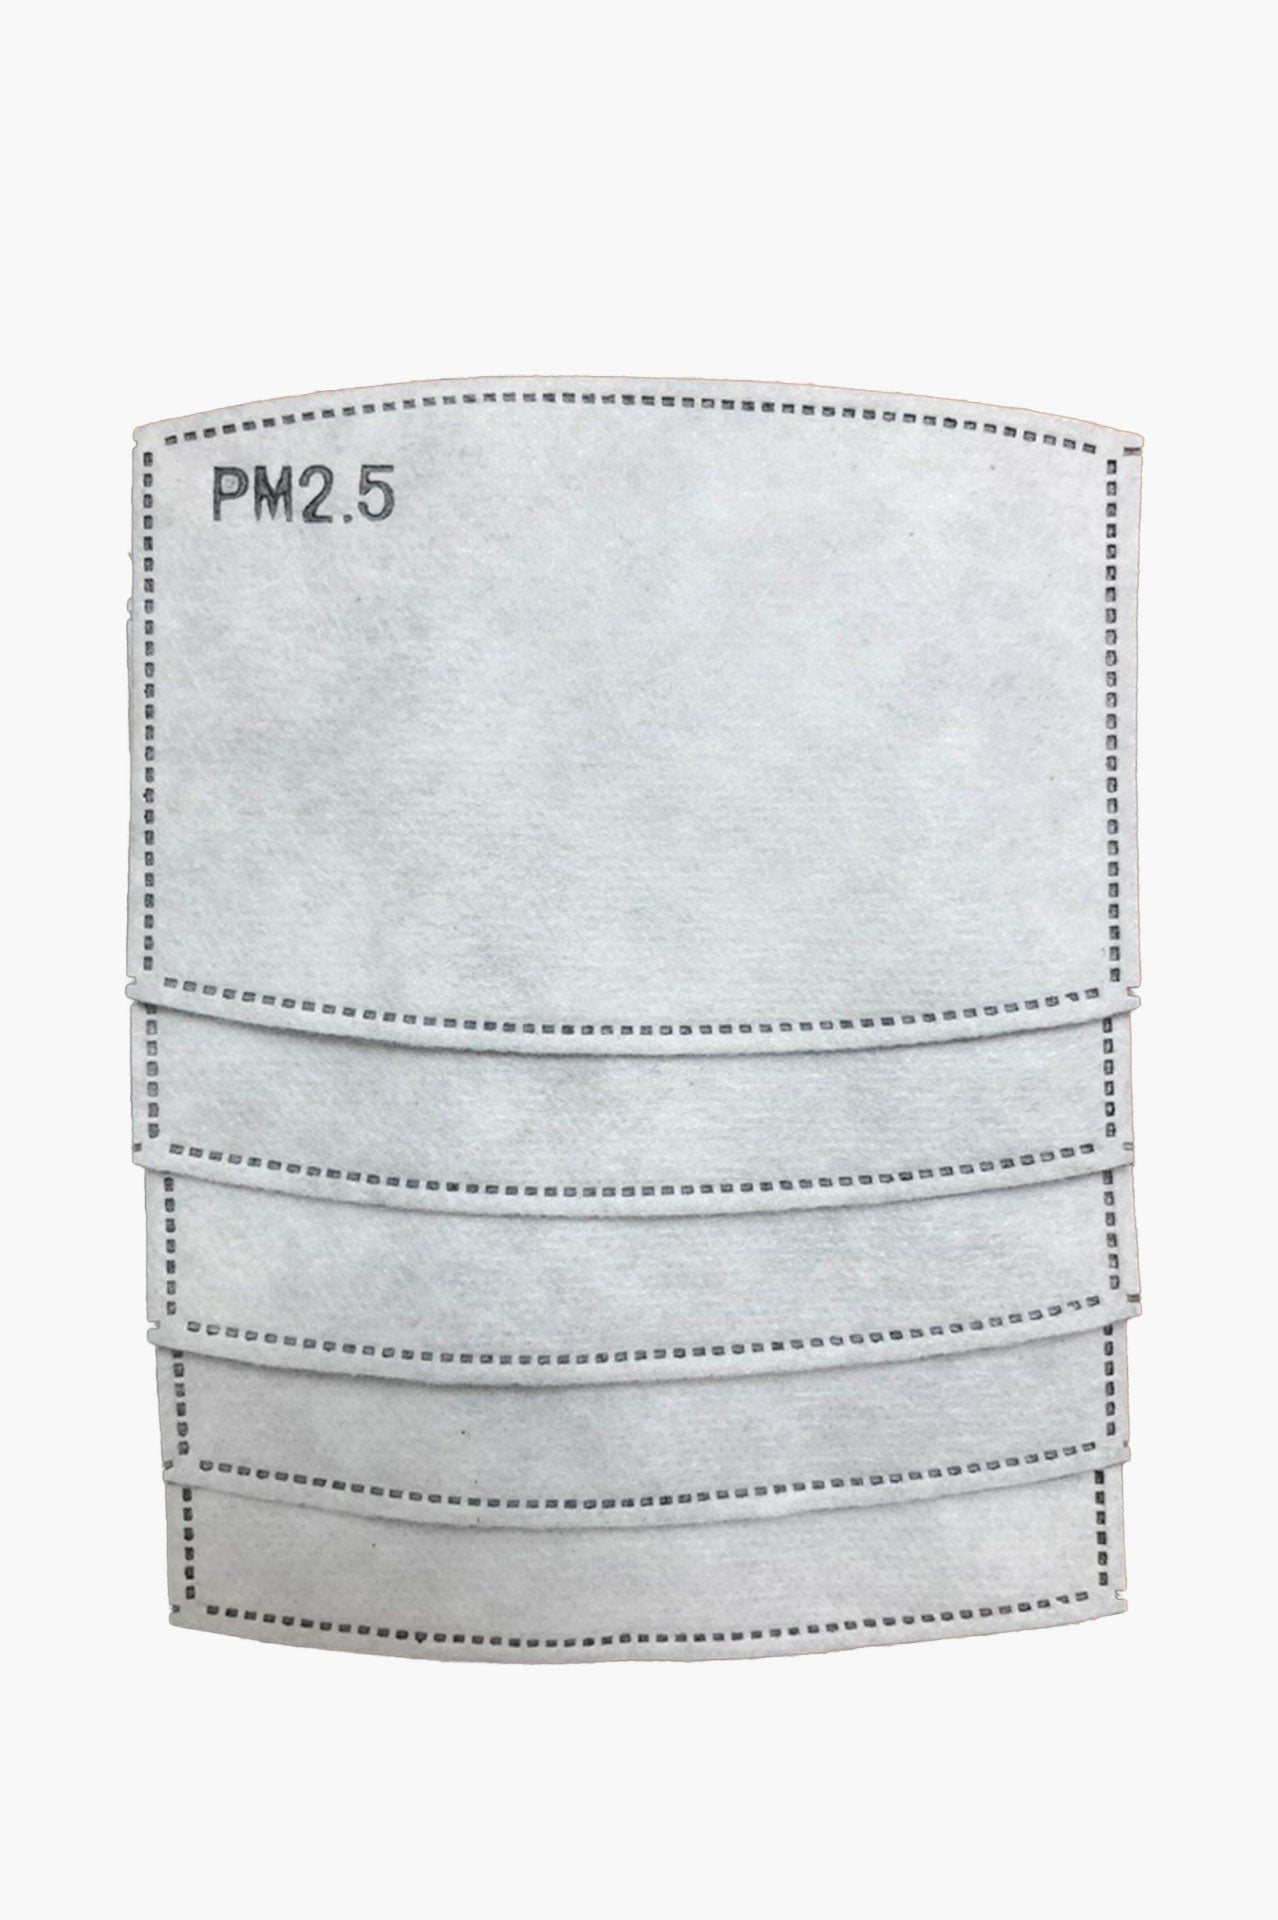 FILTER PM2.5 FOR REUSABLE MASKS